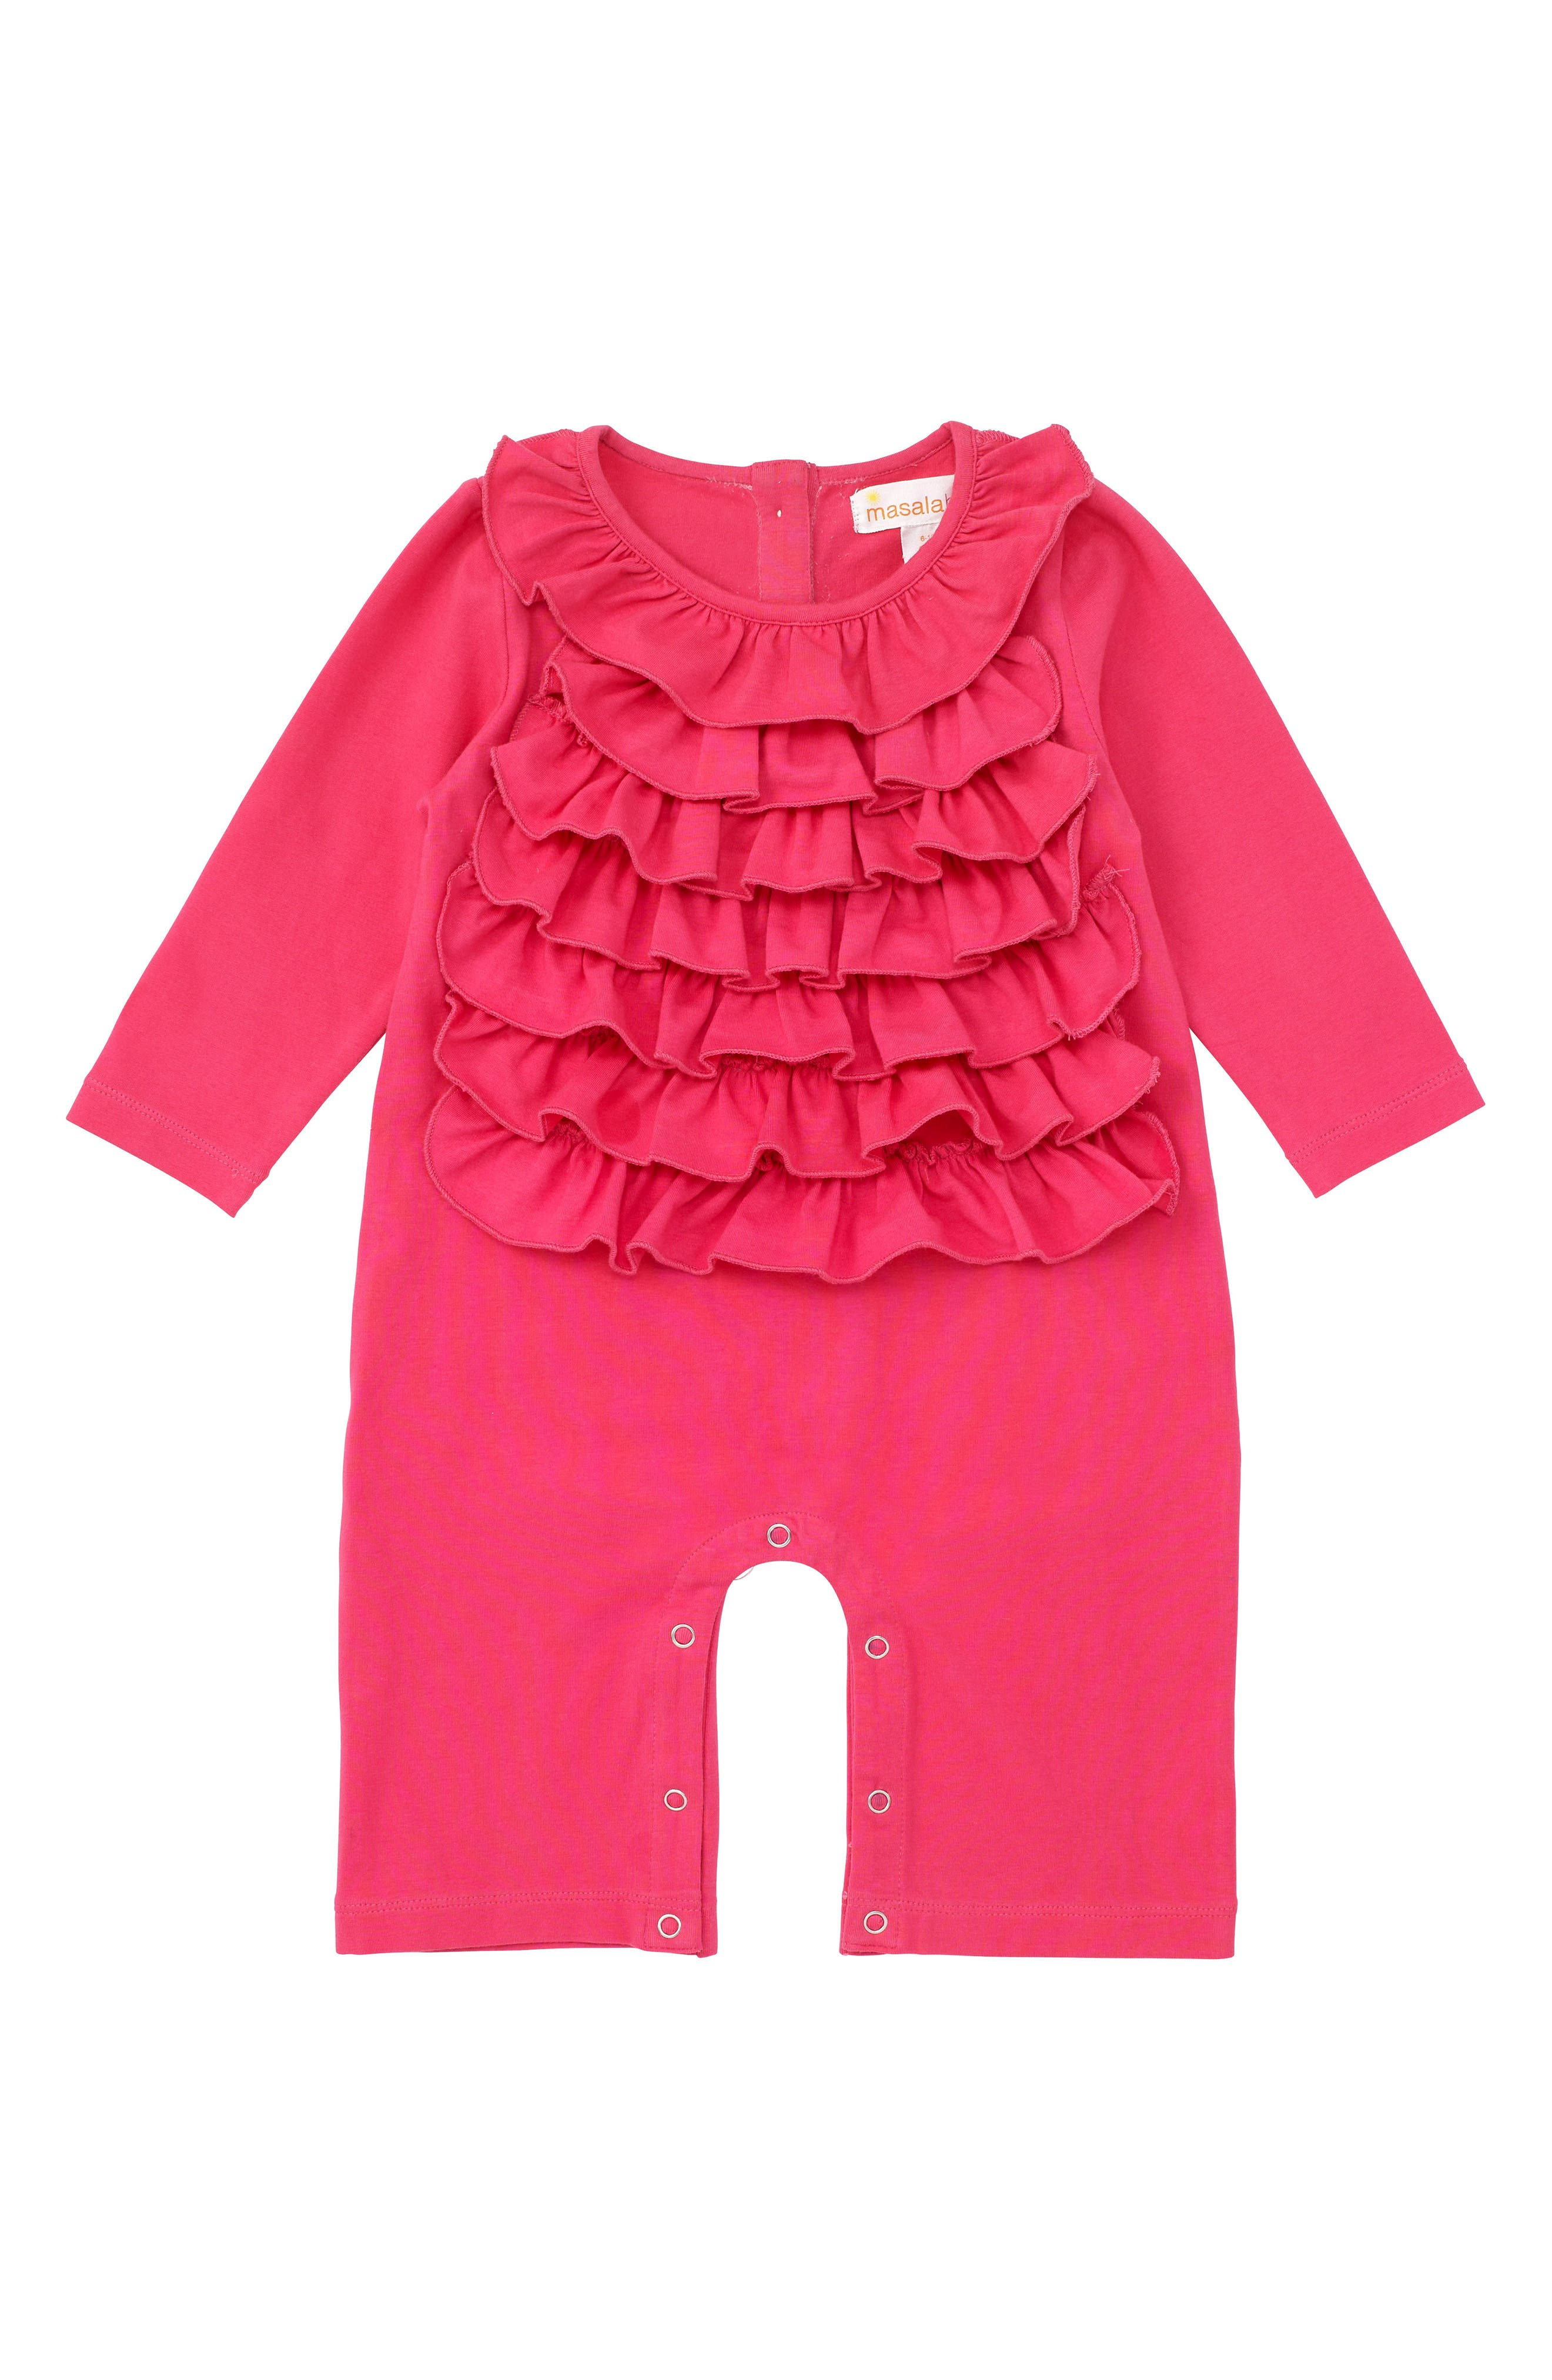 Alternate Image 1 Selected - Masala Baby Flounce Romper (Baby Girls)